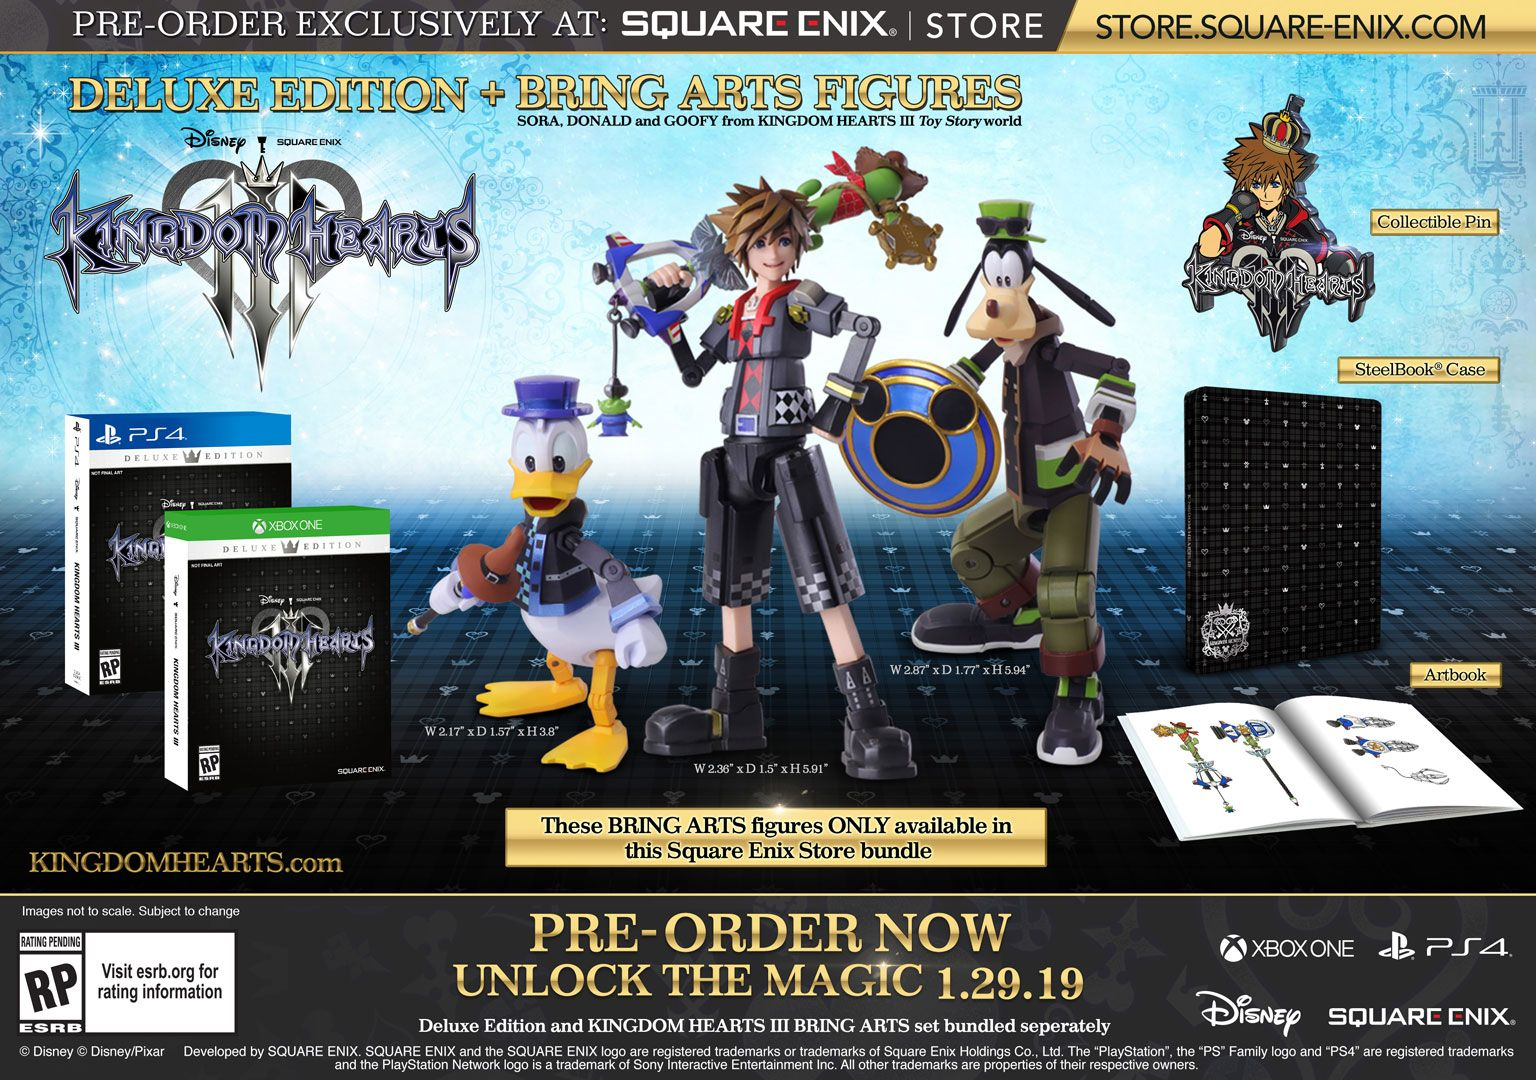 Kingdom Hearts 3 Deluxe Edition with Bring Arts figures